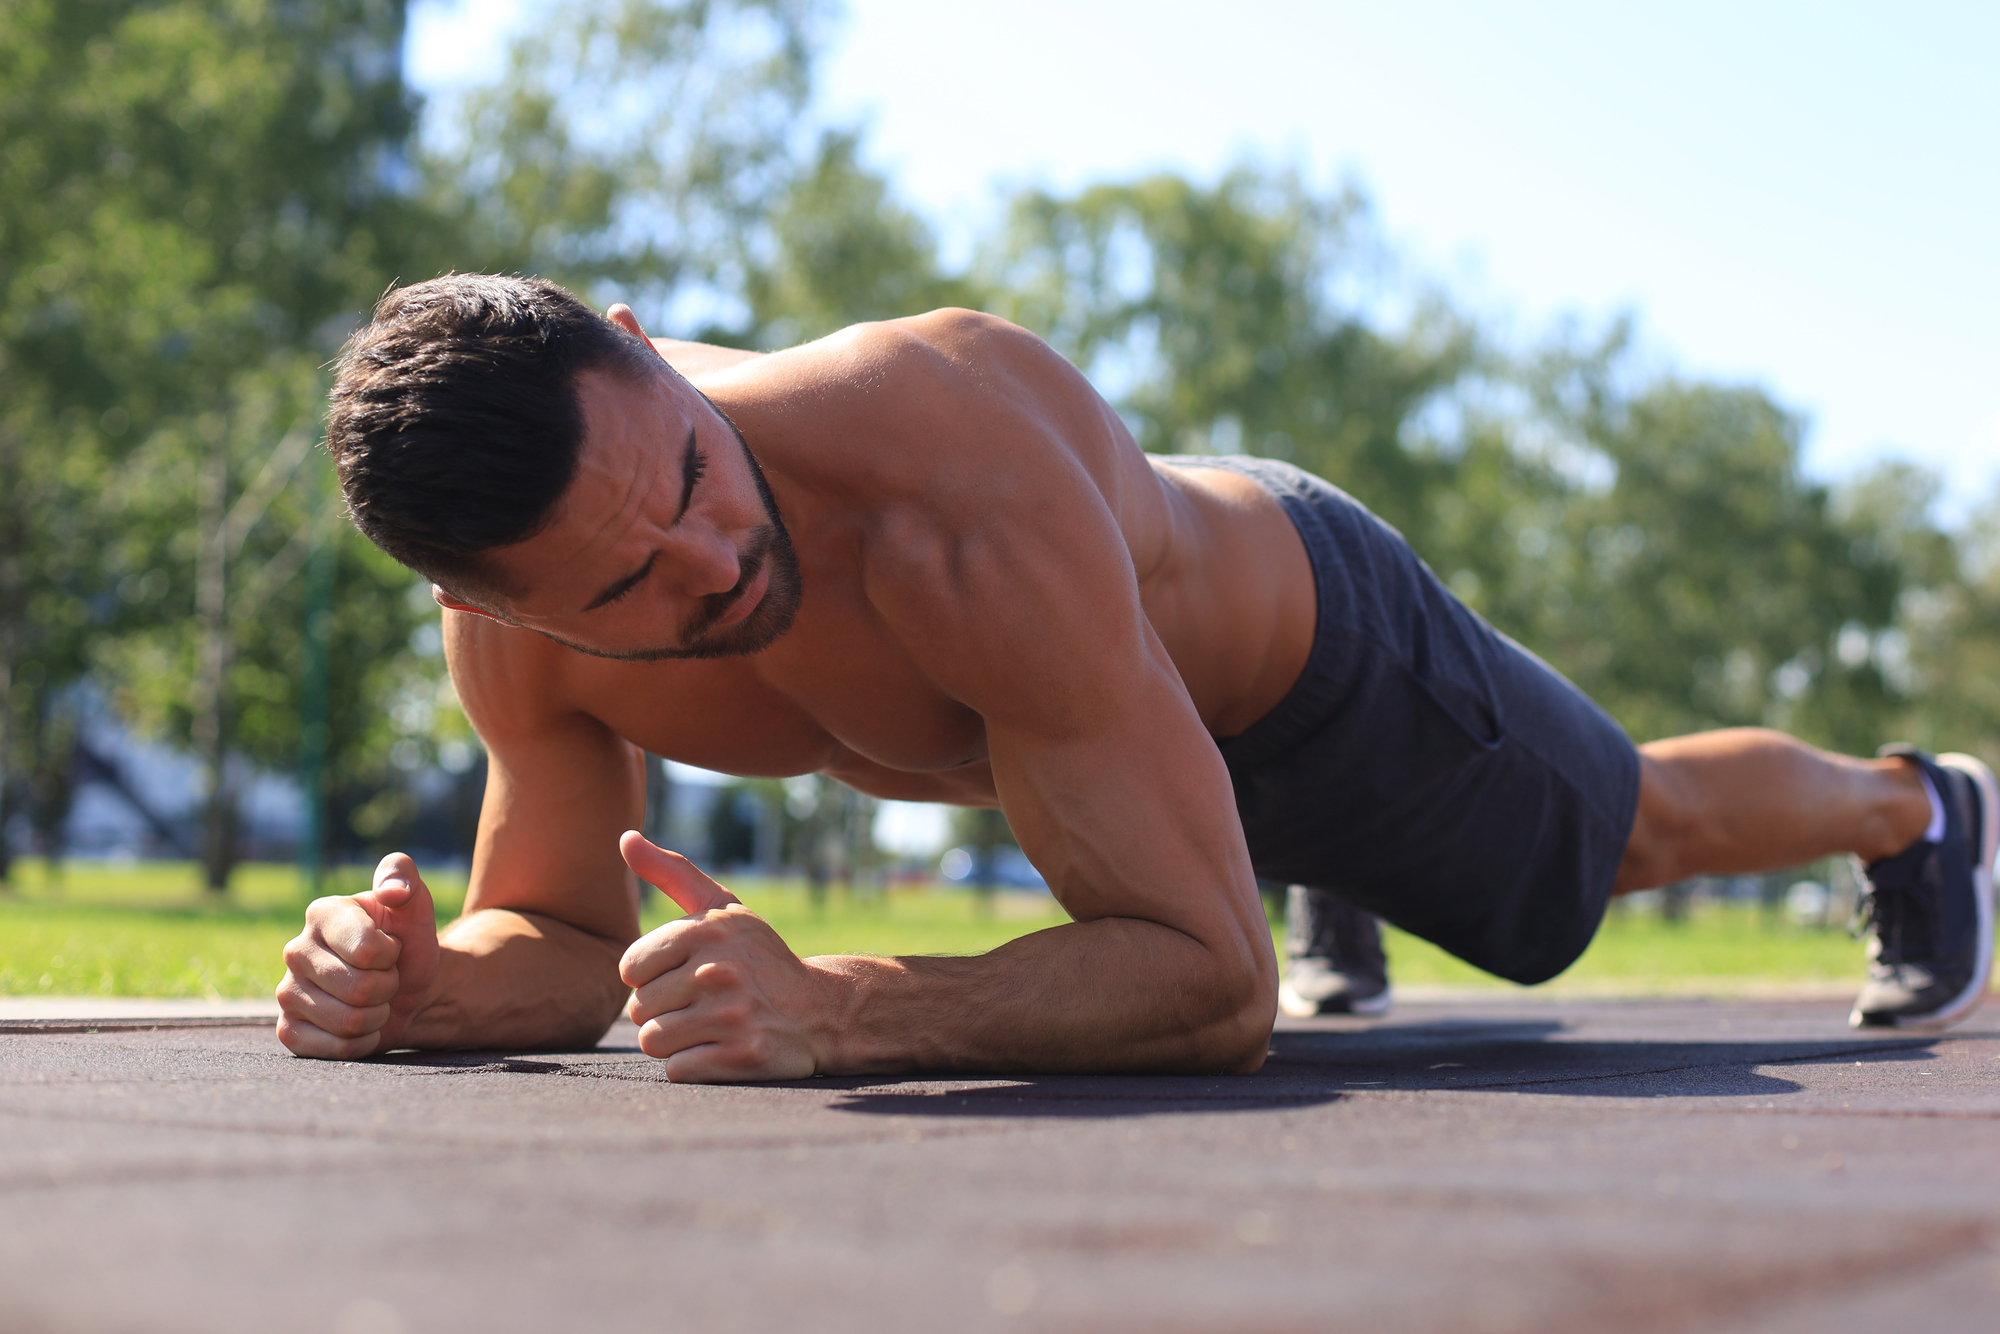 Plank exercise outdoors